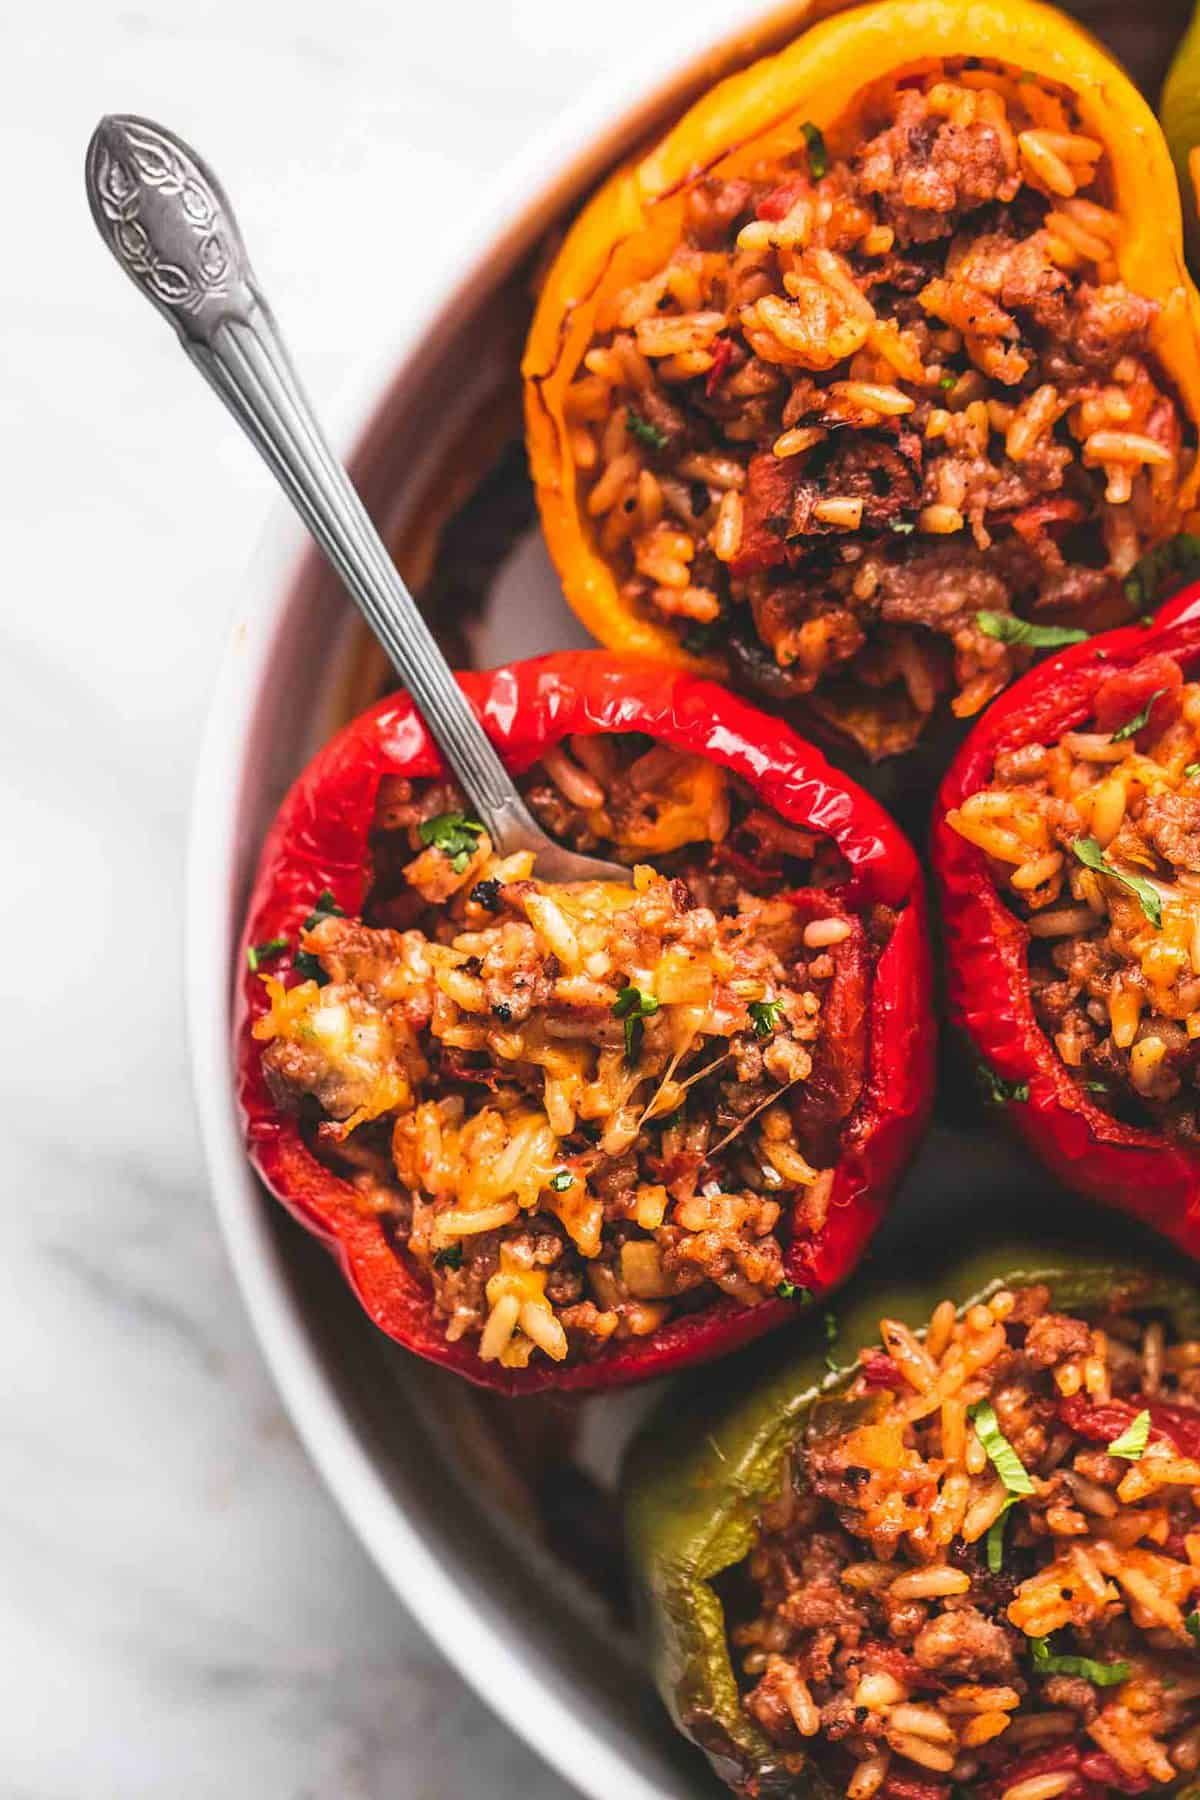 Easy Cheesy Sausage And Rice Stuffed Bell Peppers Just Five Ingredients And Ready In 20 Minutes For The P In 2020 Stuffed Peppers Easy Stuffed Peppers Beef Recipes